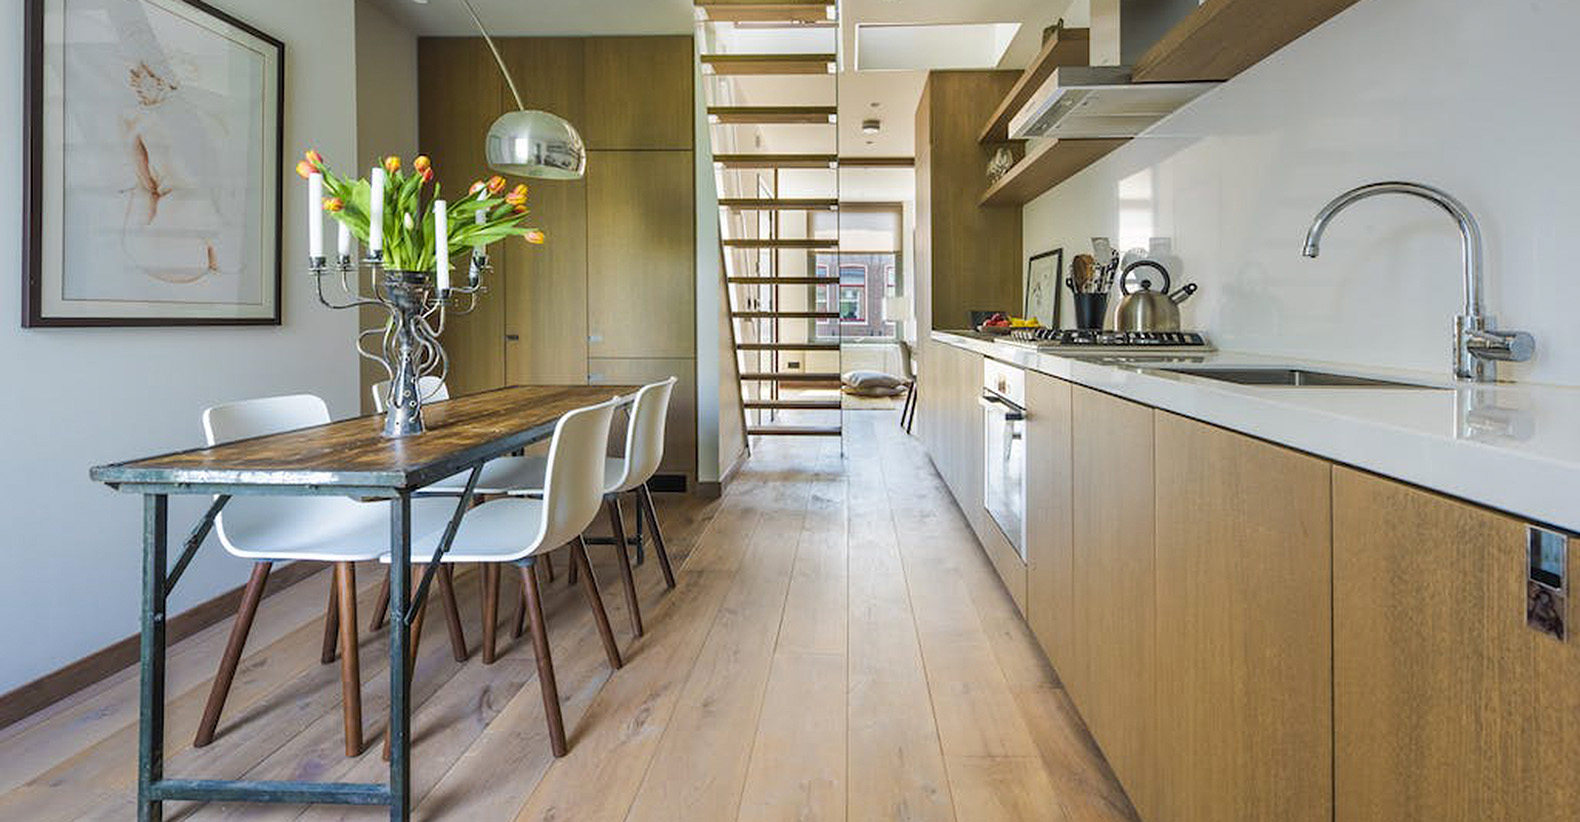 Home Interior Renovation How You Can Make Your Home Bigger home interior renovation Home Interior Renovation: How You Can Make Your Home Bigger Home Interior Renovation How You Can Make Your Home Bigger 1